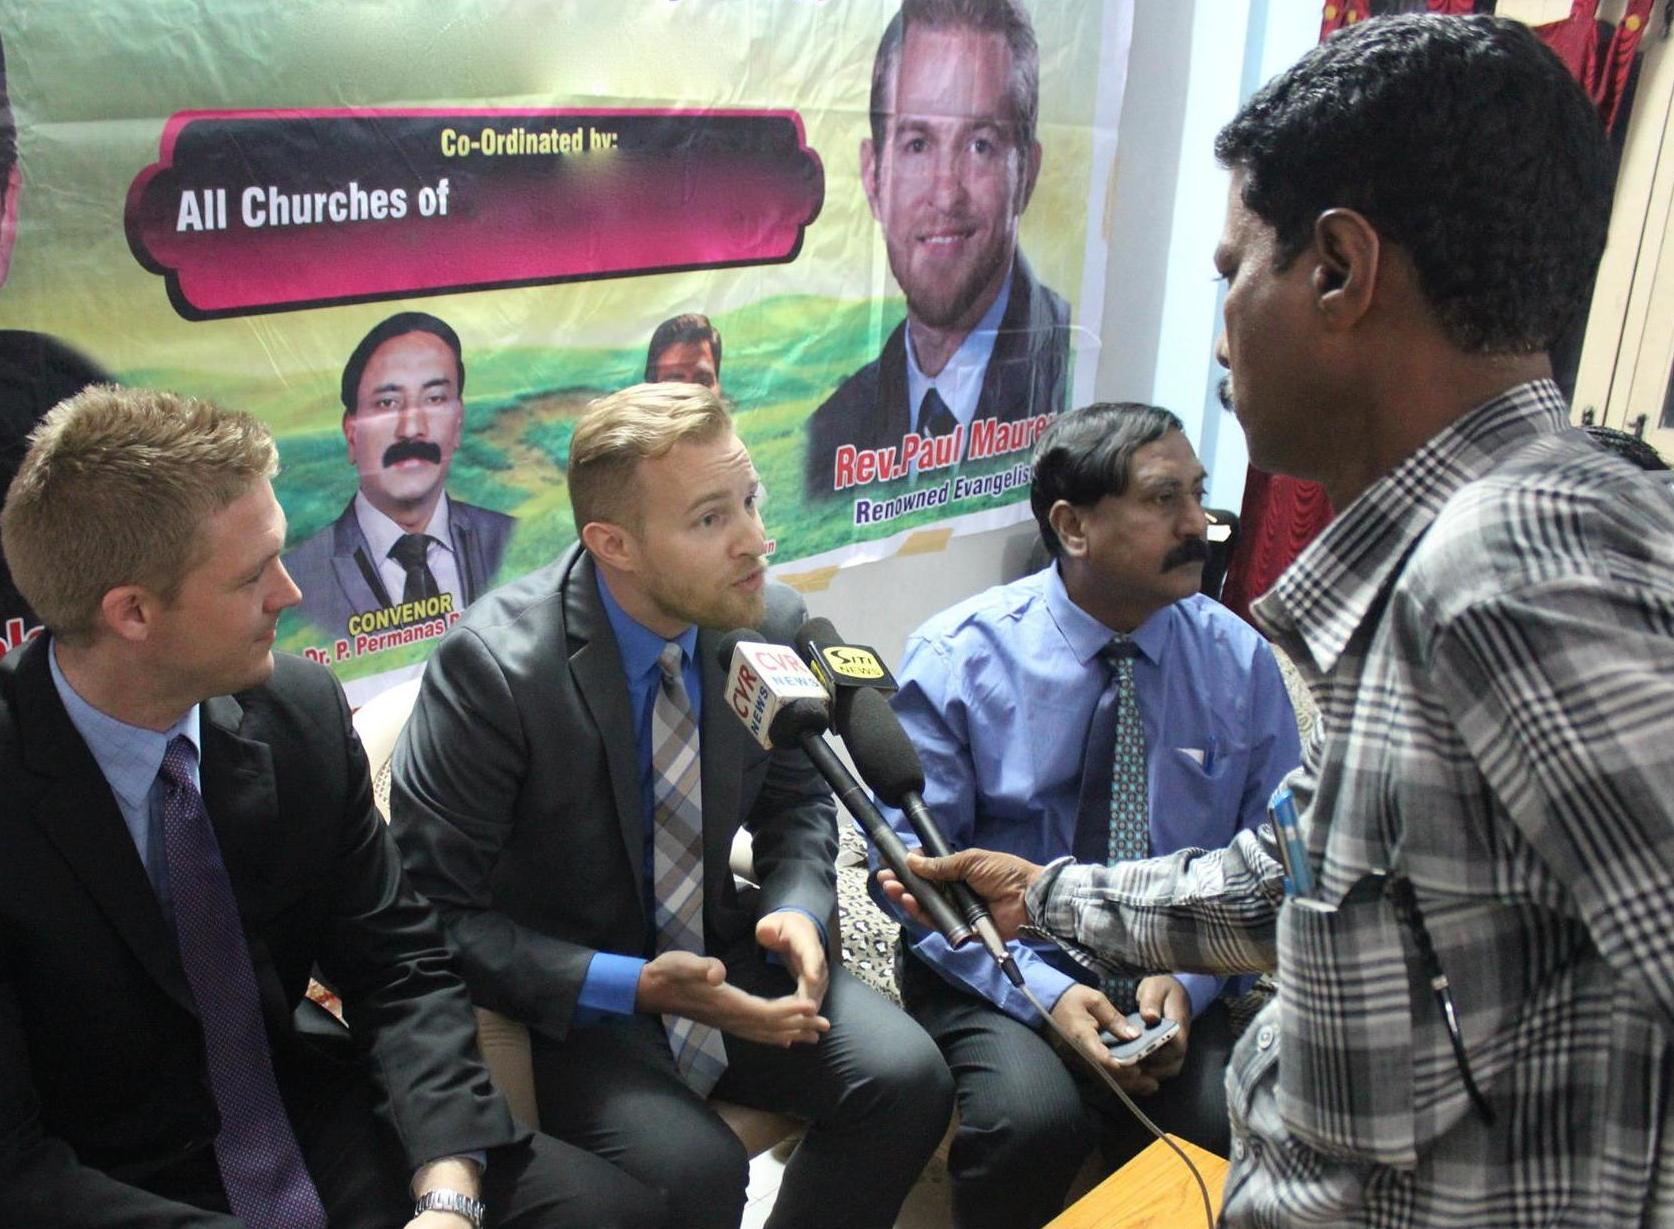 The Lord opened a door to share about the crusadeon secular television